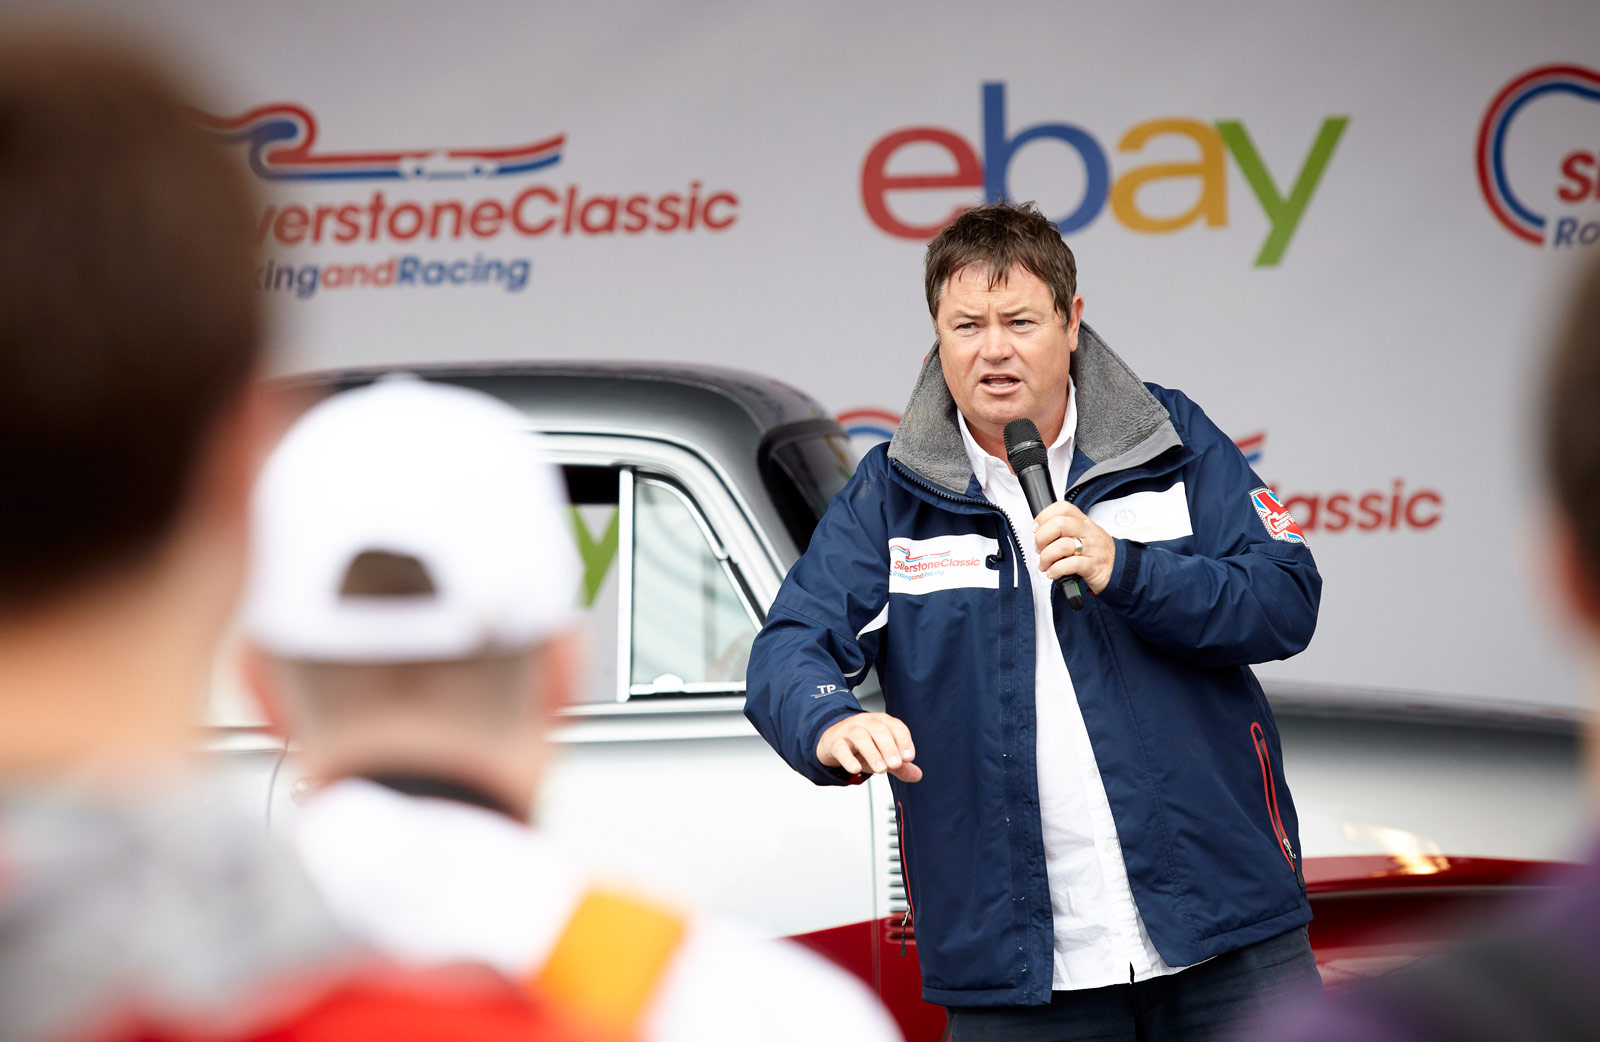 Ebay restoration project headed by Mike Brewer